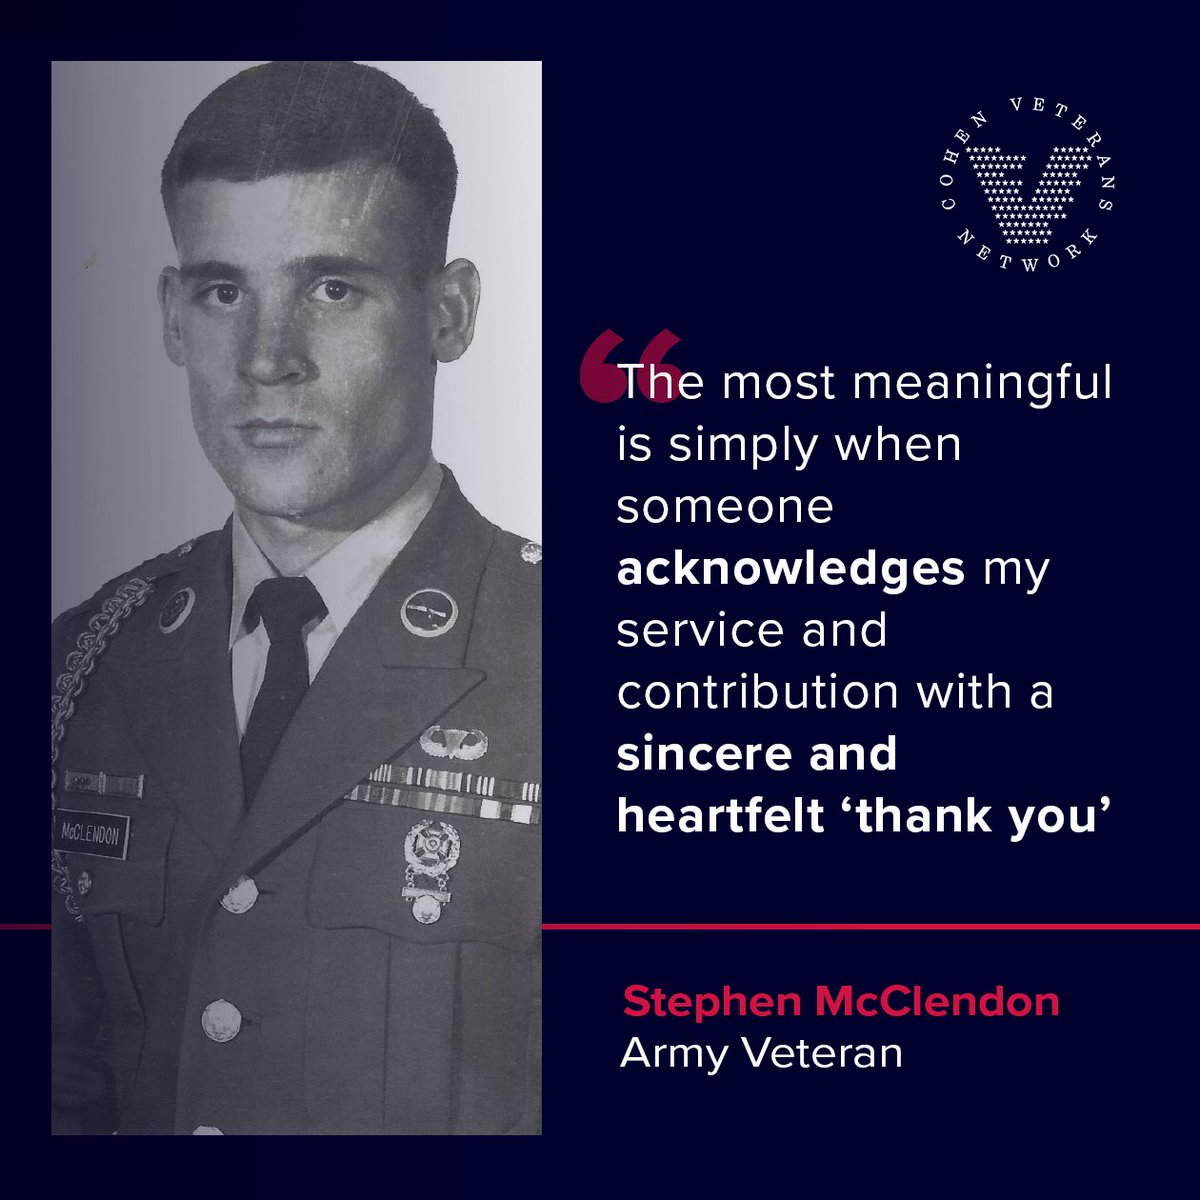 """""""How can you appreciate veterans this #VeteransDay? Stephen, Army veteran and clinician at our Cohen Clinic at Aspire Health Partners explains that for him, a simple  acknowledgement and heartfelt """"thank you"""" can show gratitude.   #BeyondTheThankYou"""""""